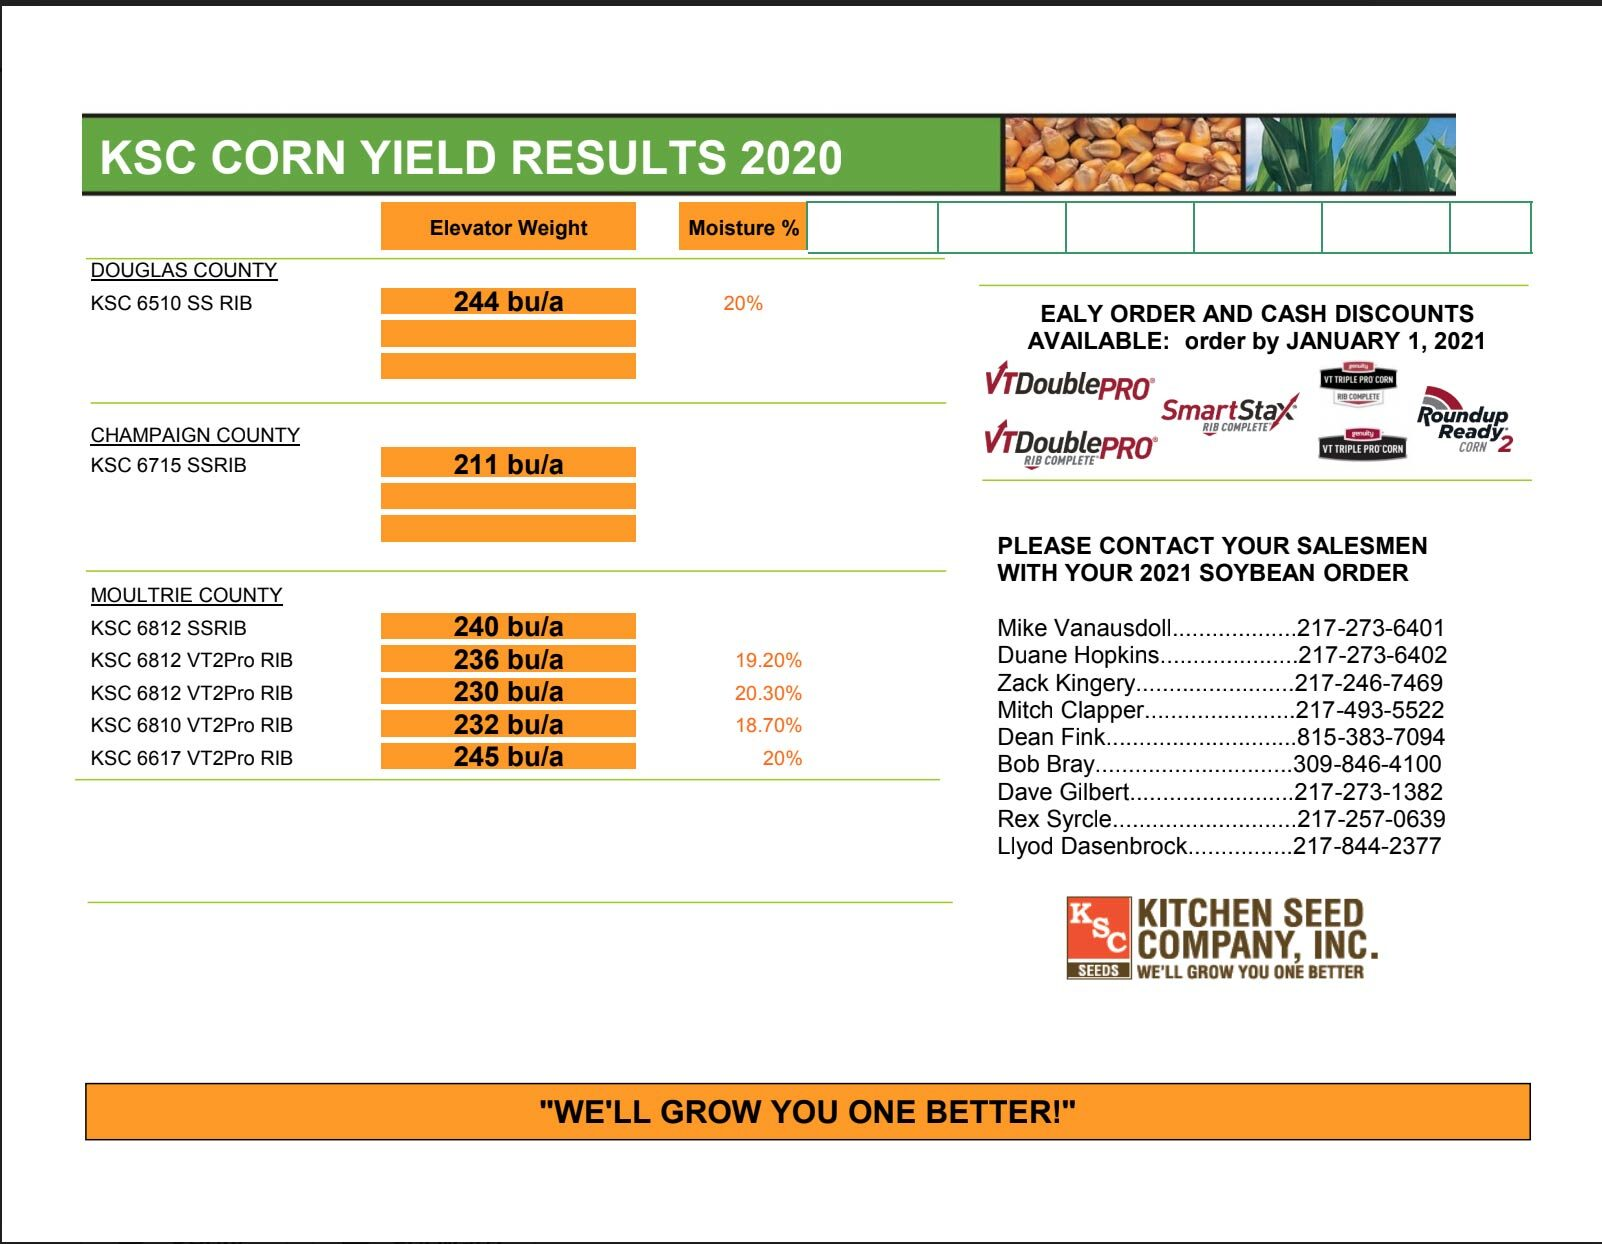 KSC-Corn-Yield-Results